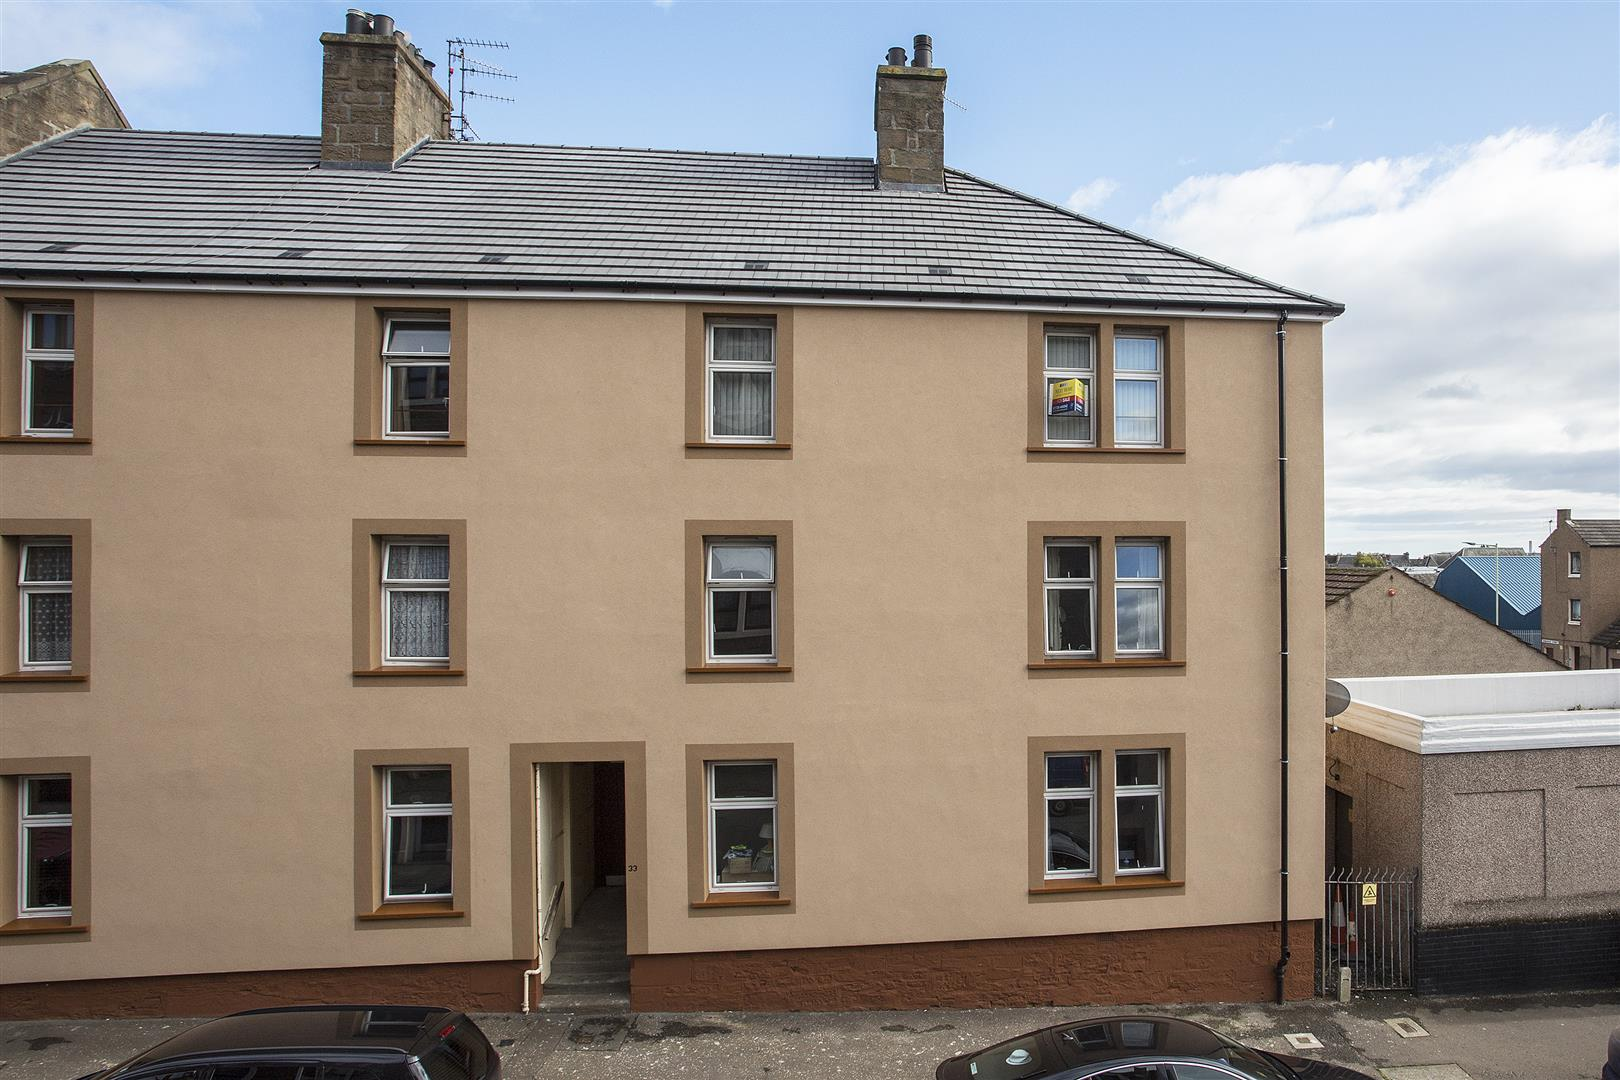 33E, Wolseley Street, Angus, DD3 7QL, UK